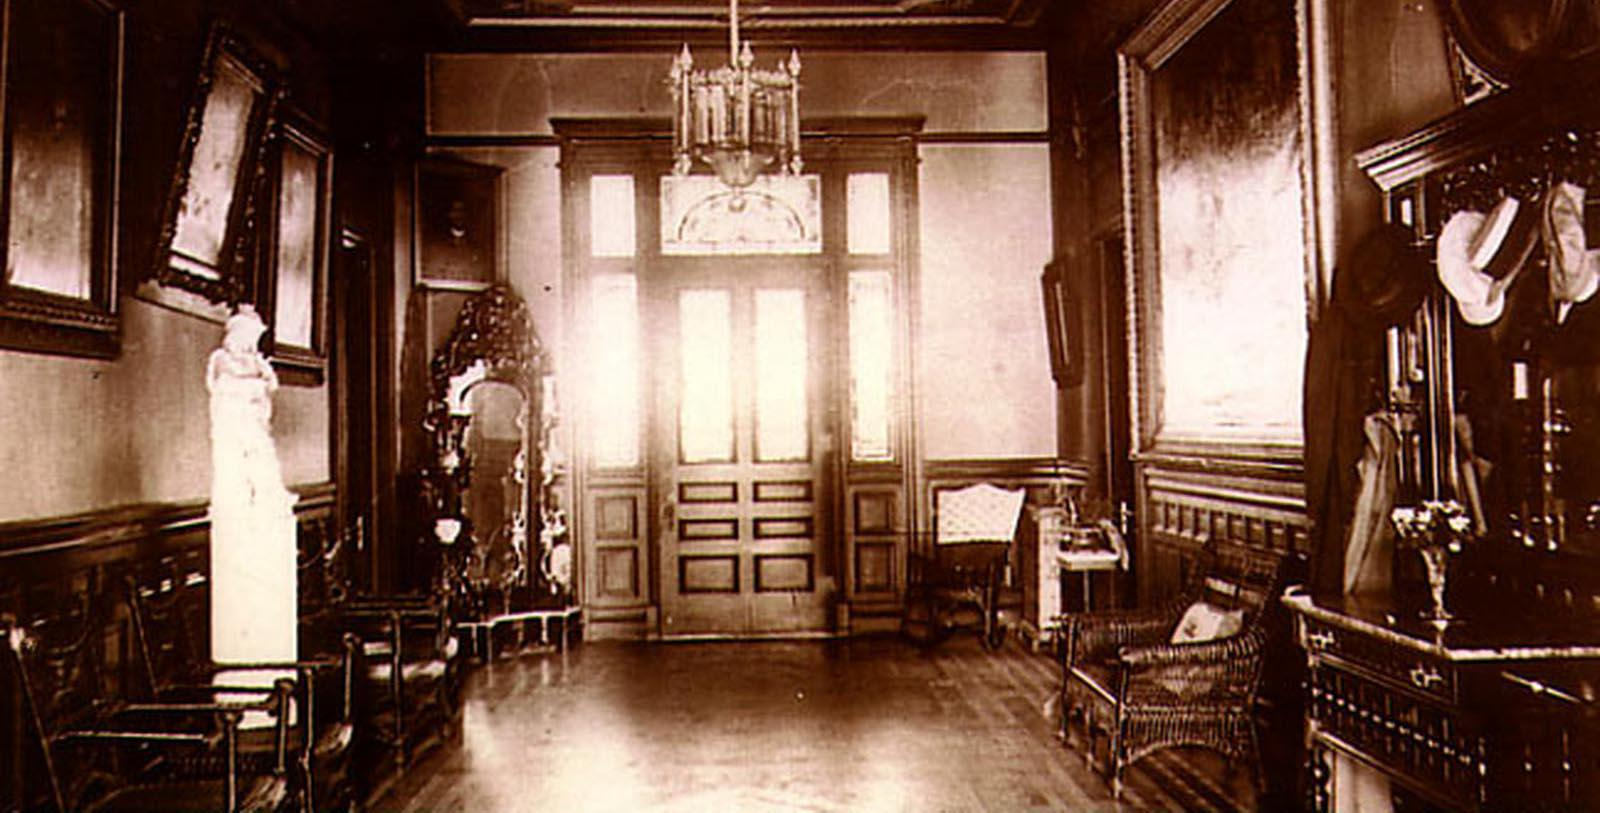 Image of Historic Lobby, Wentworth Mansion, Charleston, South Carolina, 1886, Member of Historic Hotels of America, Discover